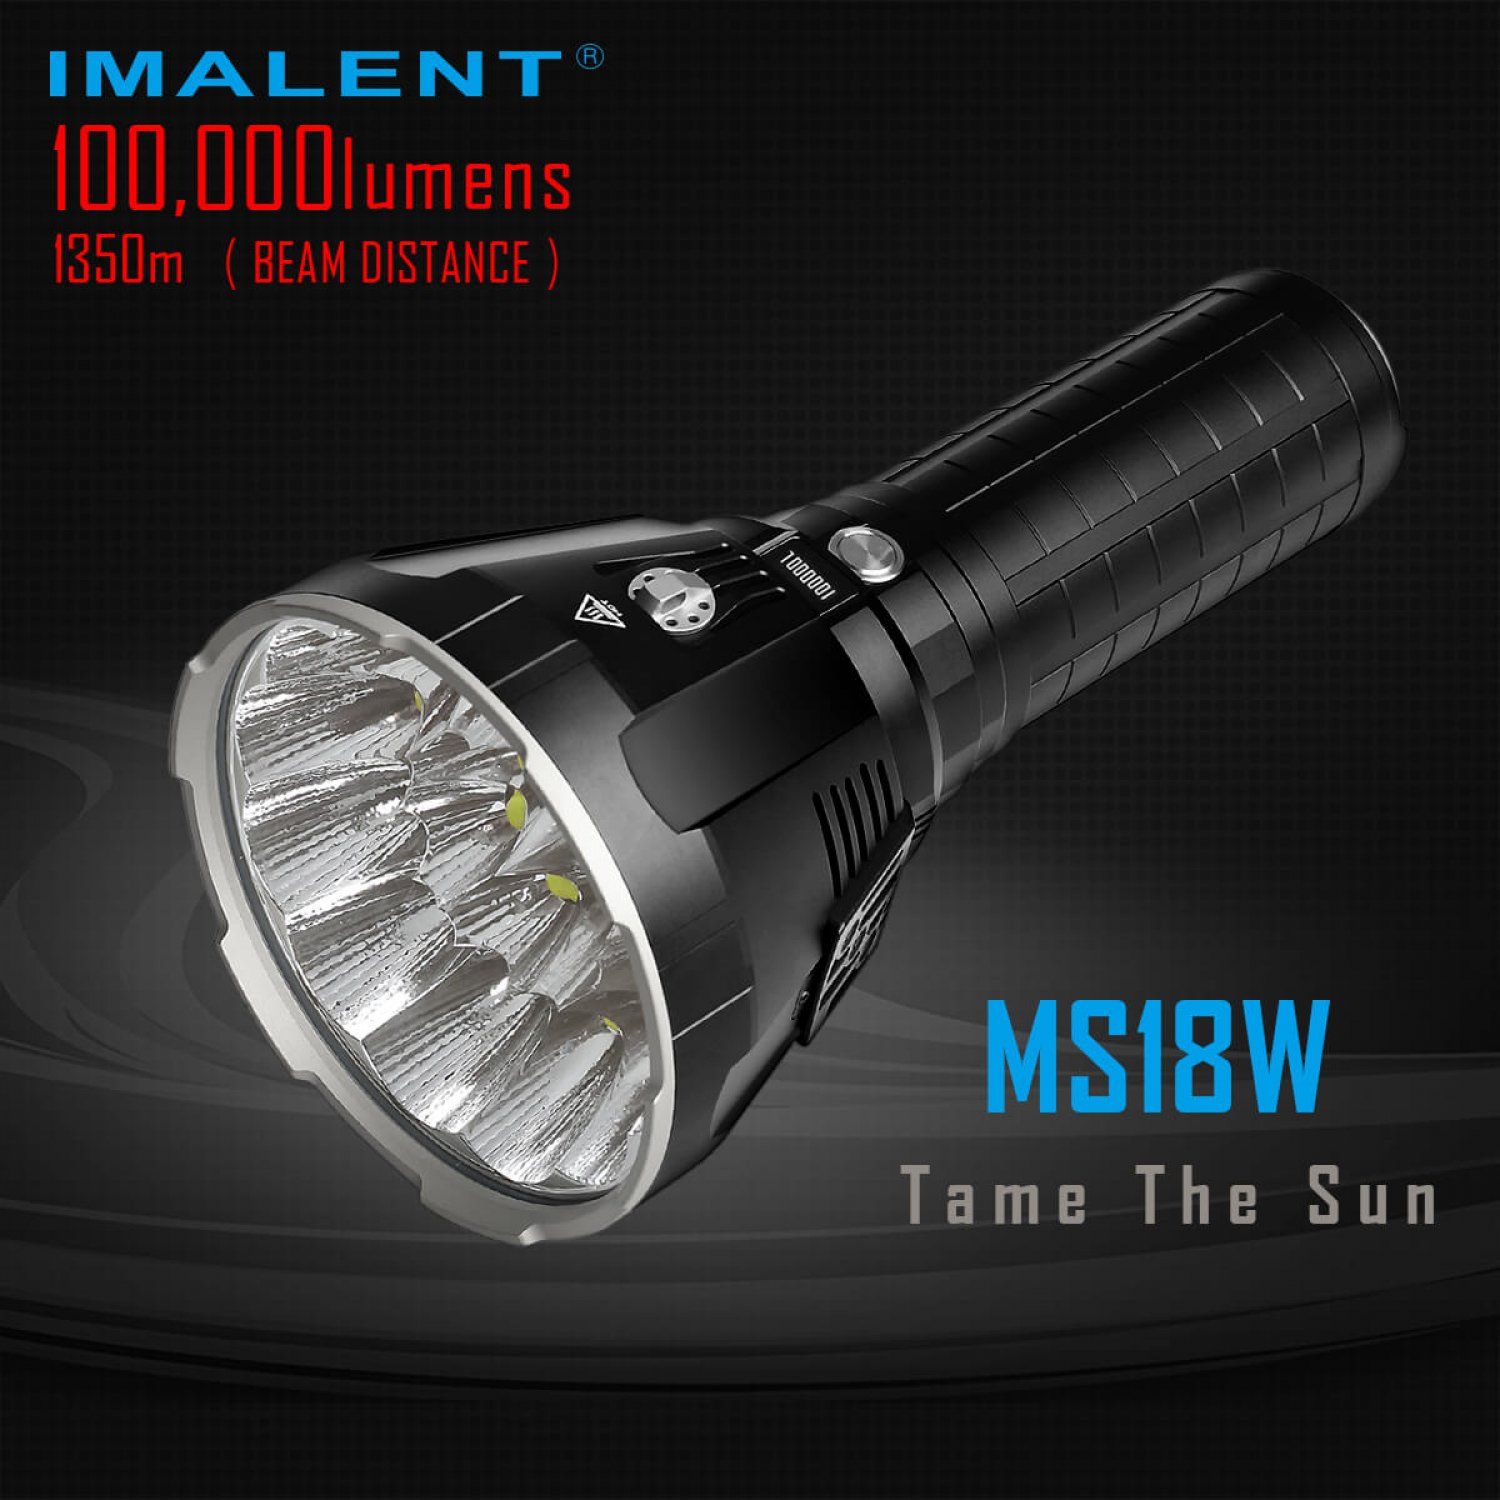 Imalent MS18W - Occasion